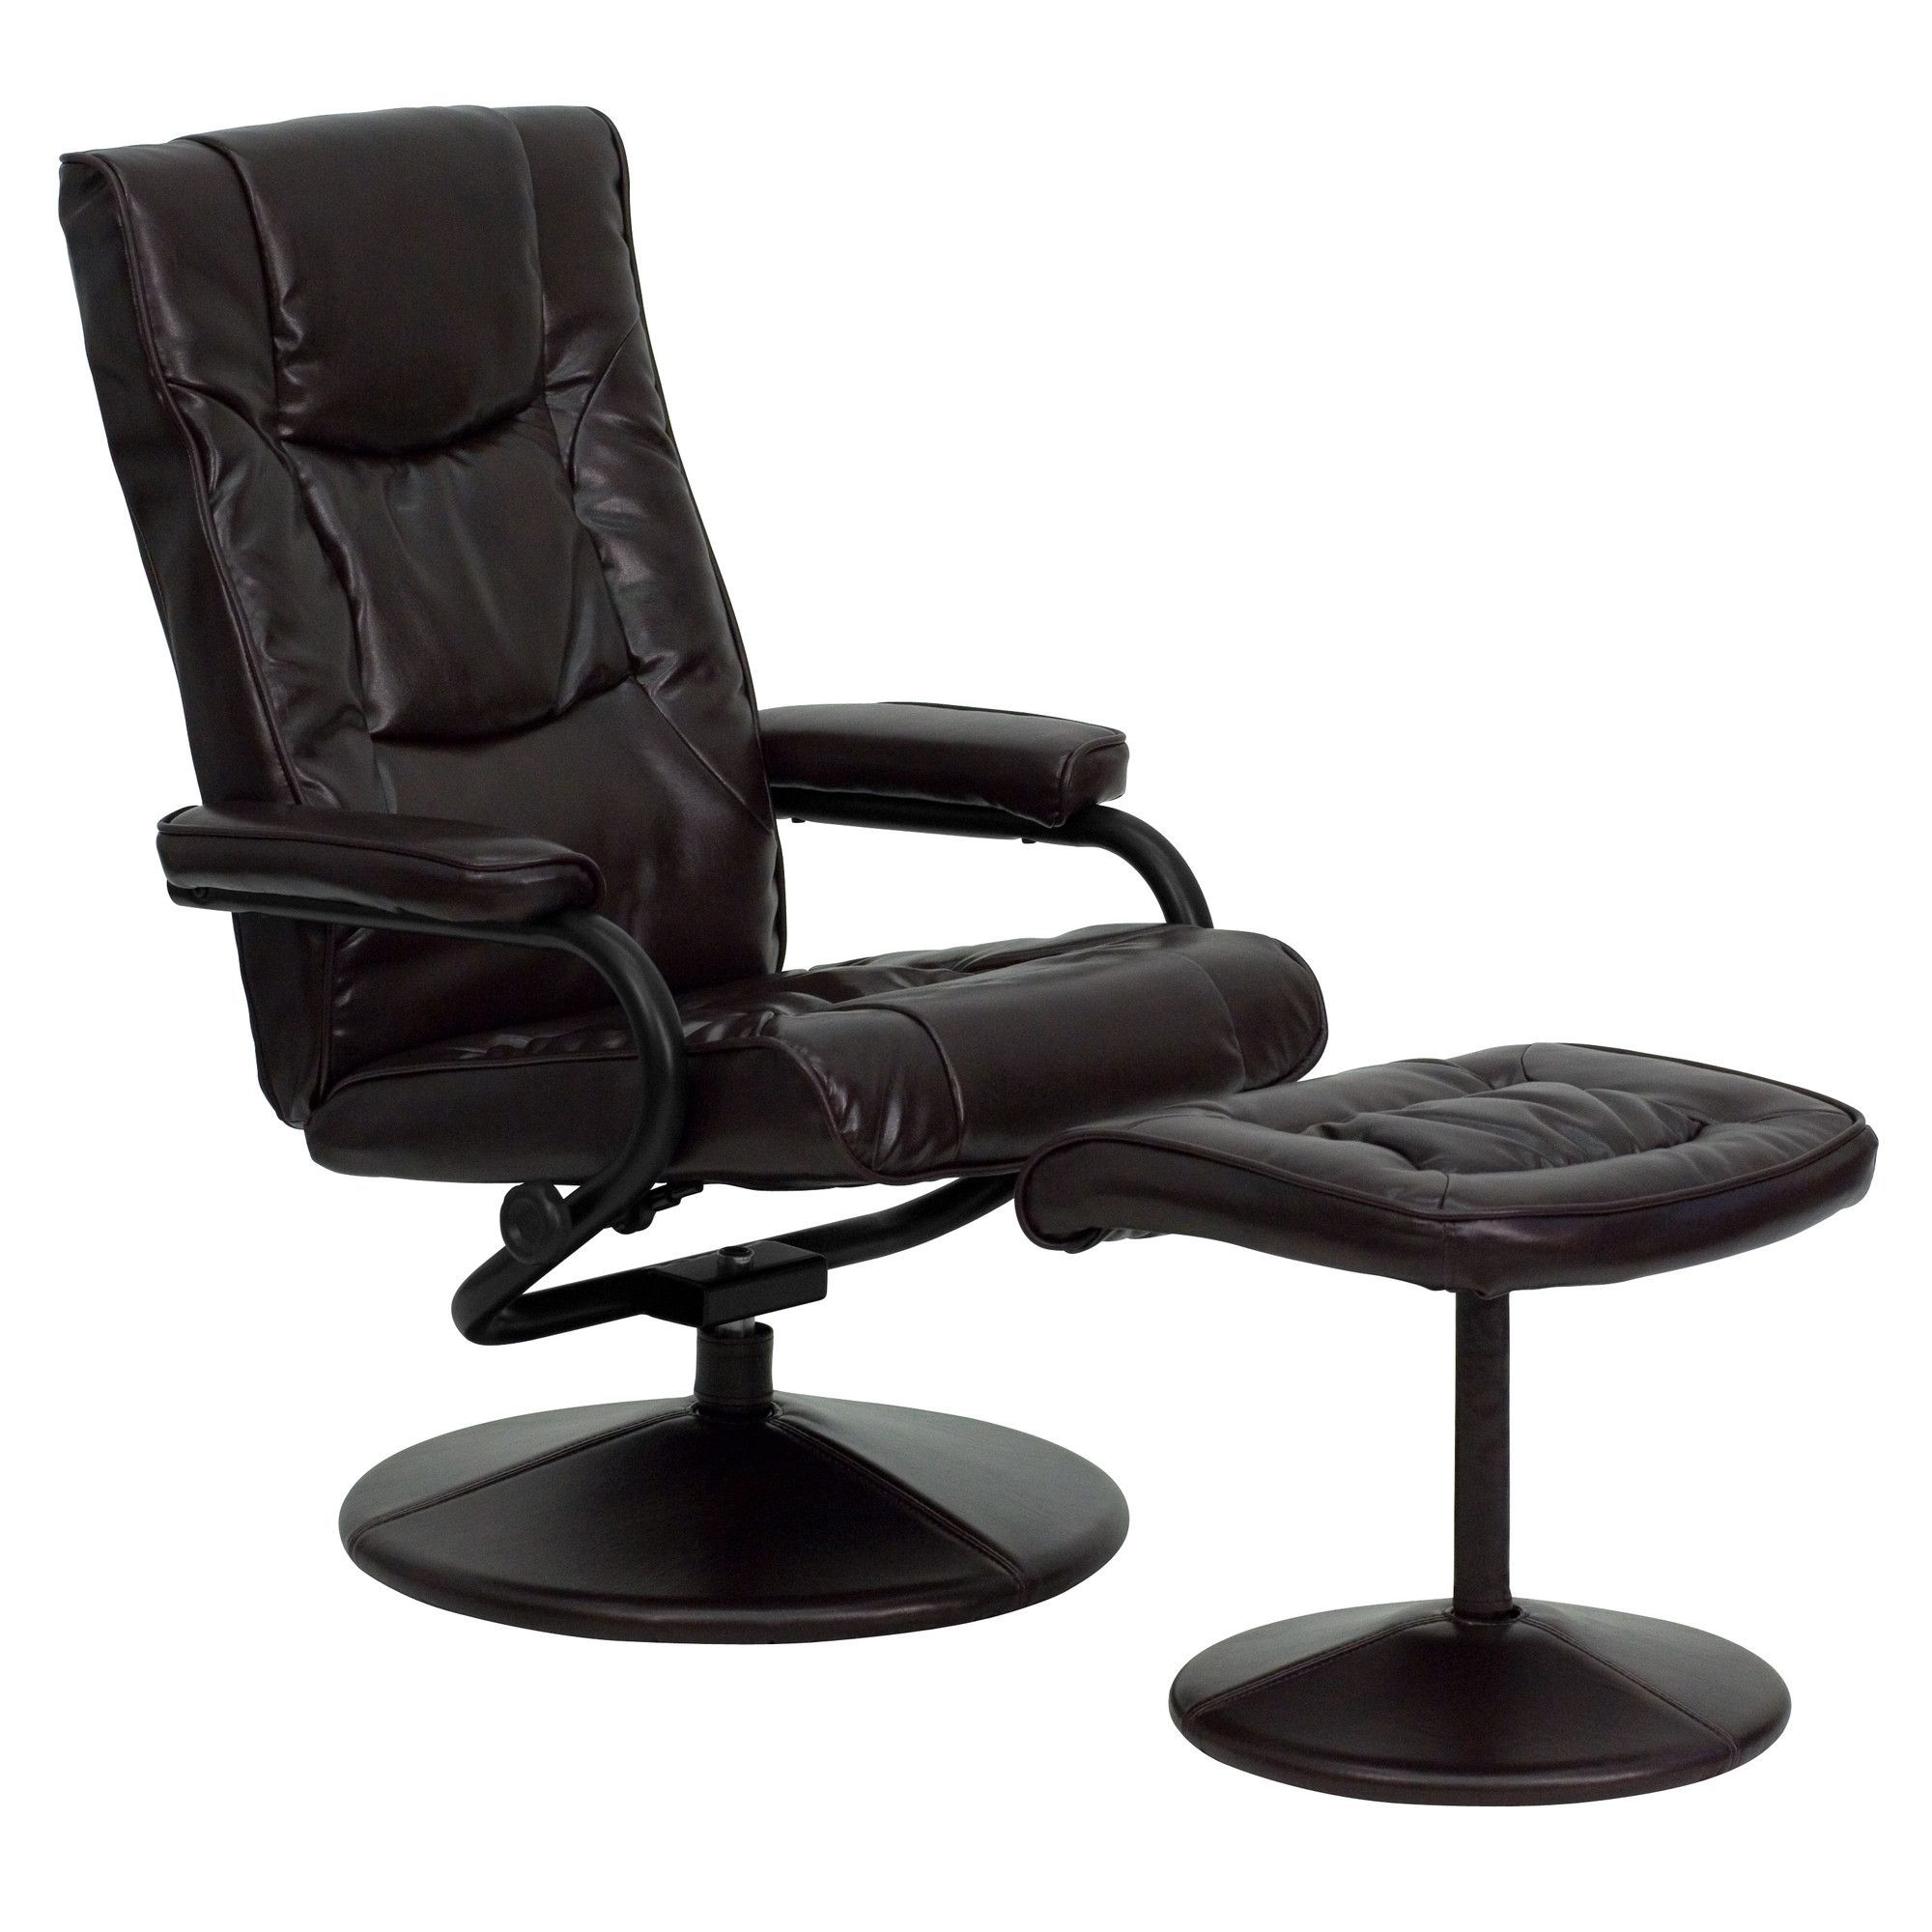 office reclining chair. Manual Swivel Recliner With Ottoman Office Reclining Chair H